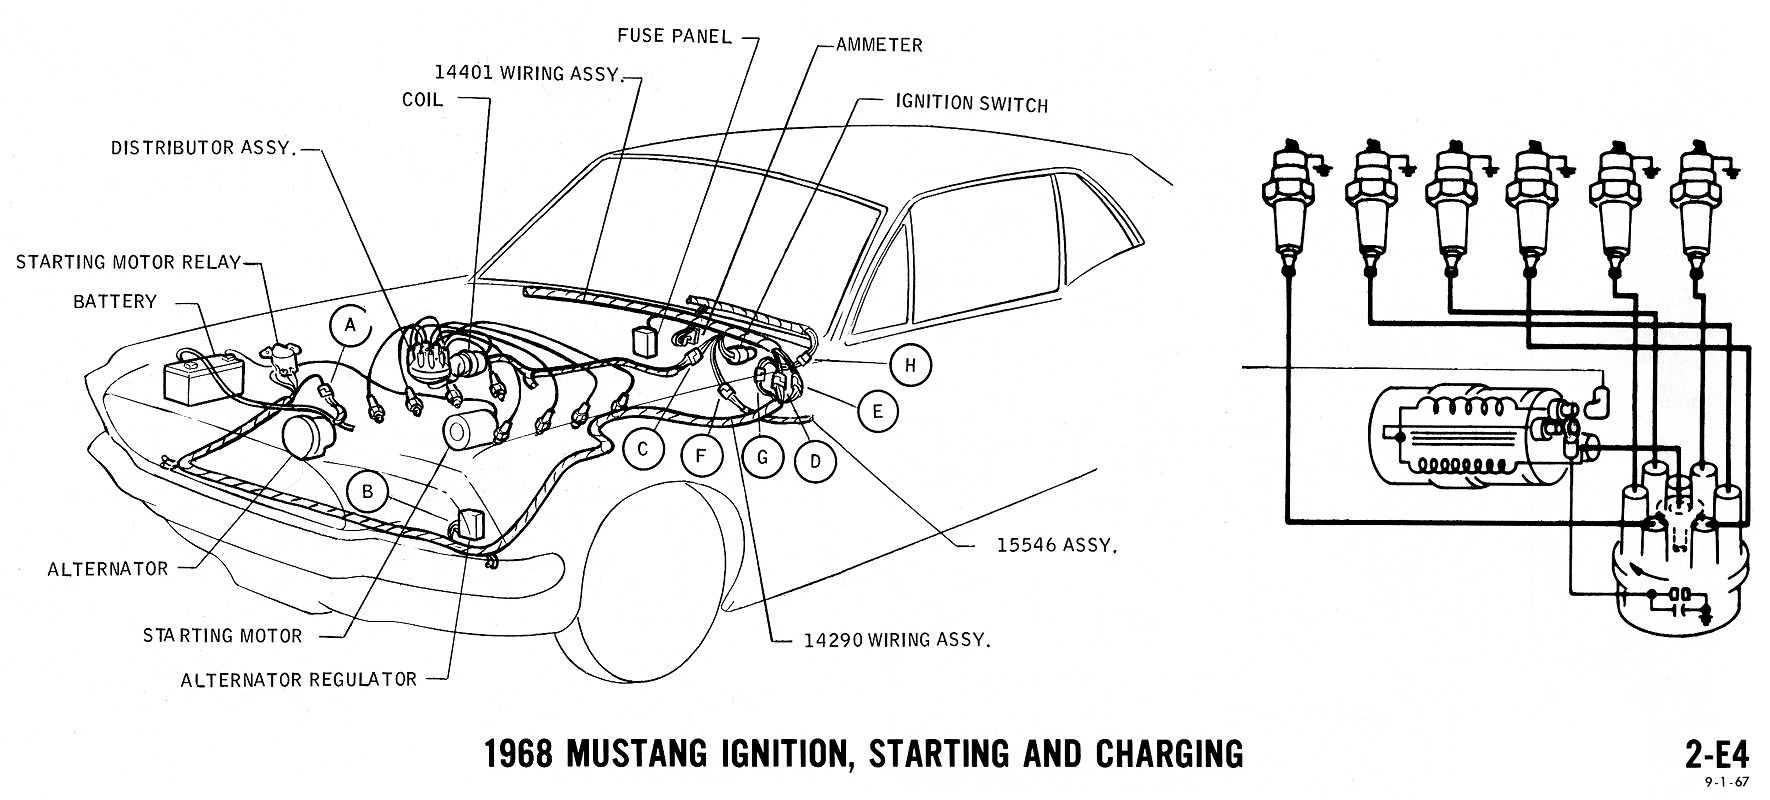 1968 Mustang Wiring Diagrams Evolving Software 1996 Bmw 328i Engine Wire Harness Charging Starting